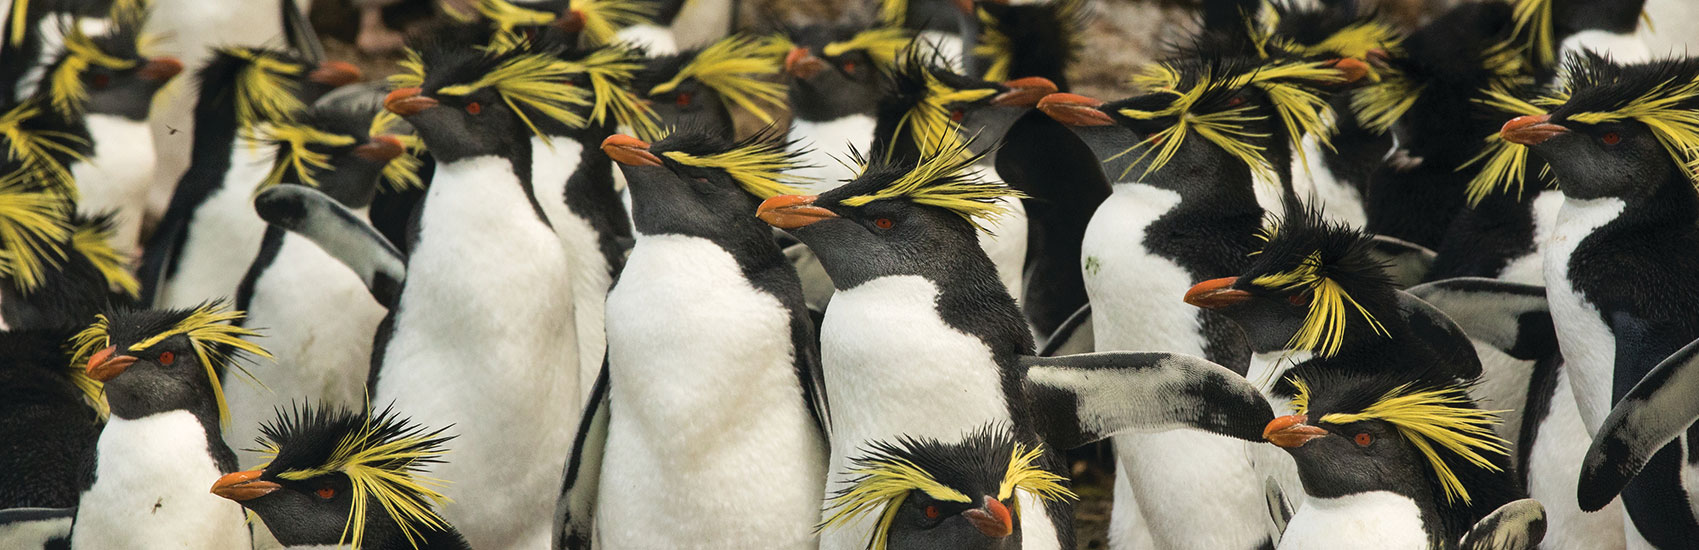 All-Inclusive Antarctica Experience with Silversea Cruises 4